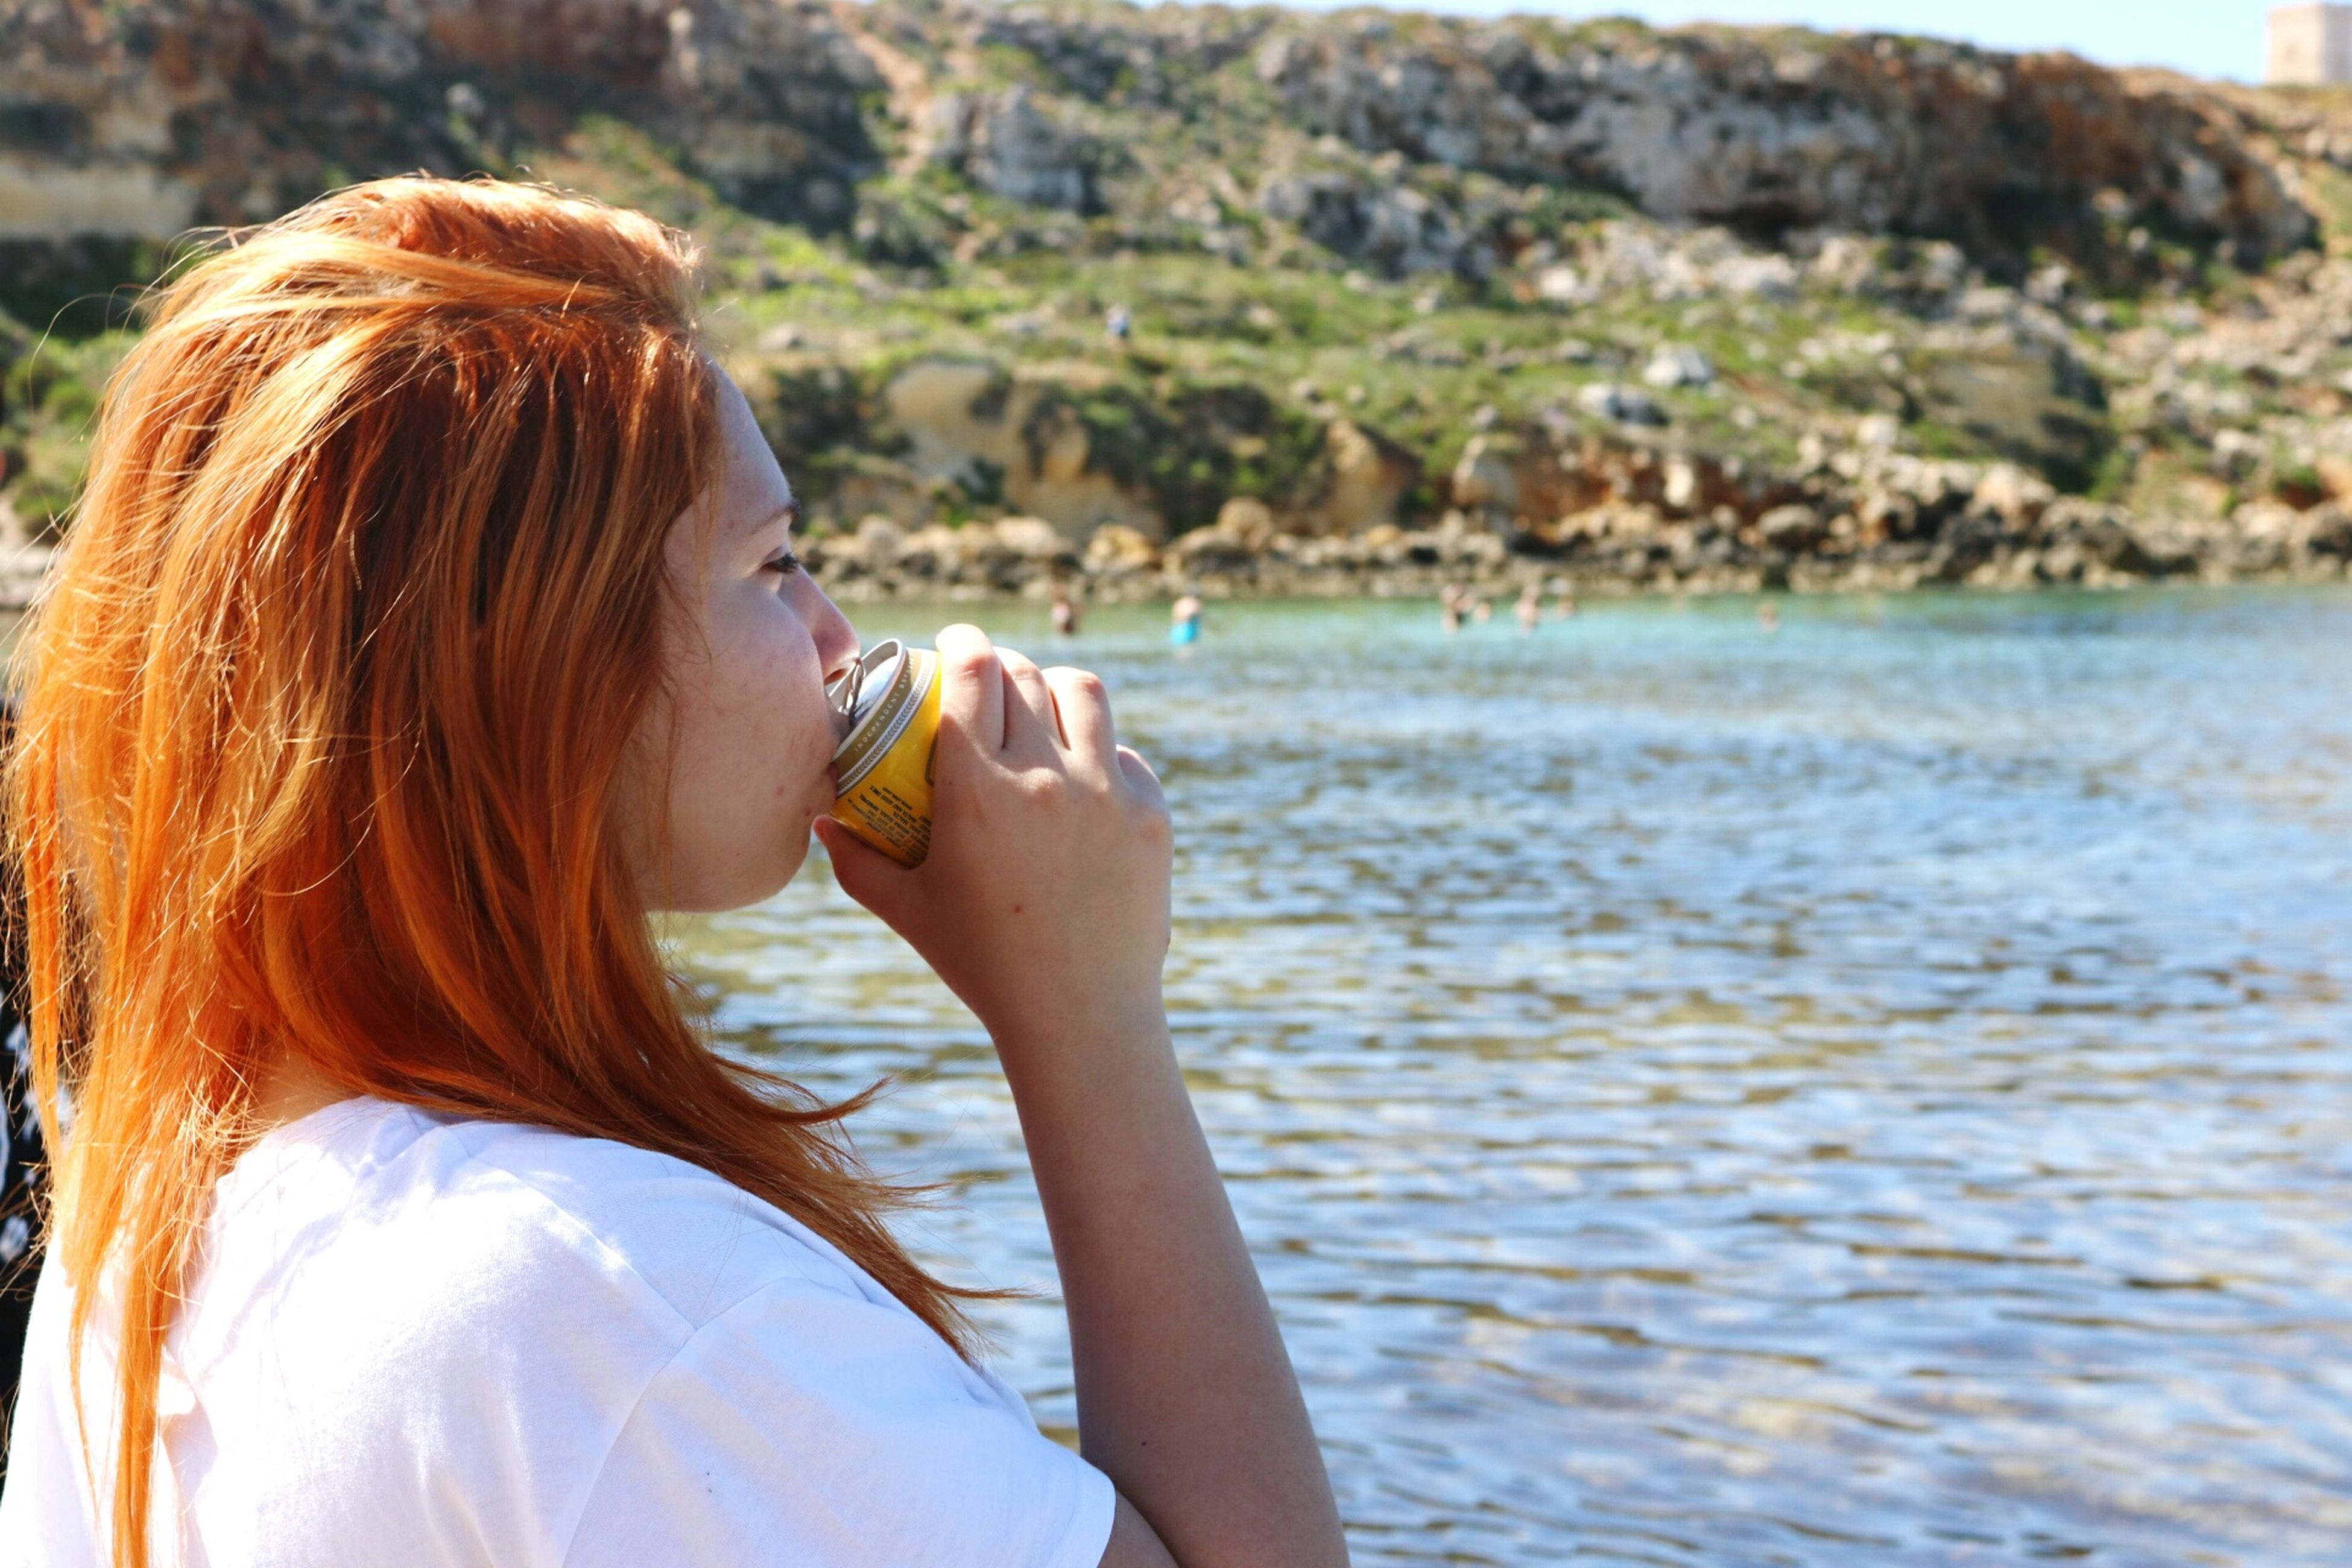 redhead, one person, real people, water, young women, young adult, leisure activity, outdoors, side view, food and drink, lifestyles, women, day, sea, nature, beach, eating, beauty in nature, one young woman only, close-up, adult, people